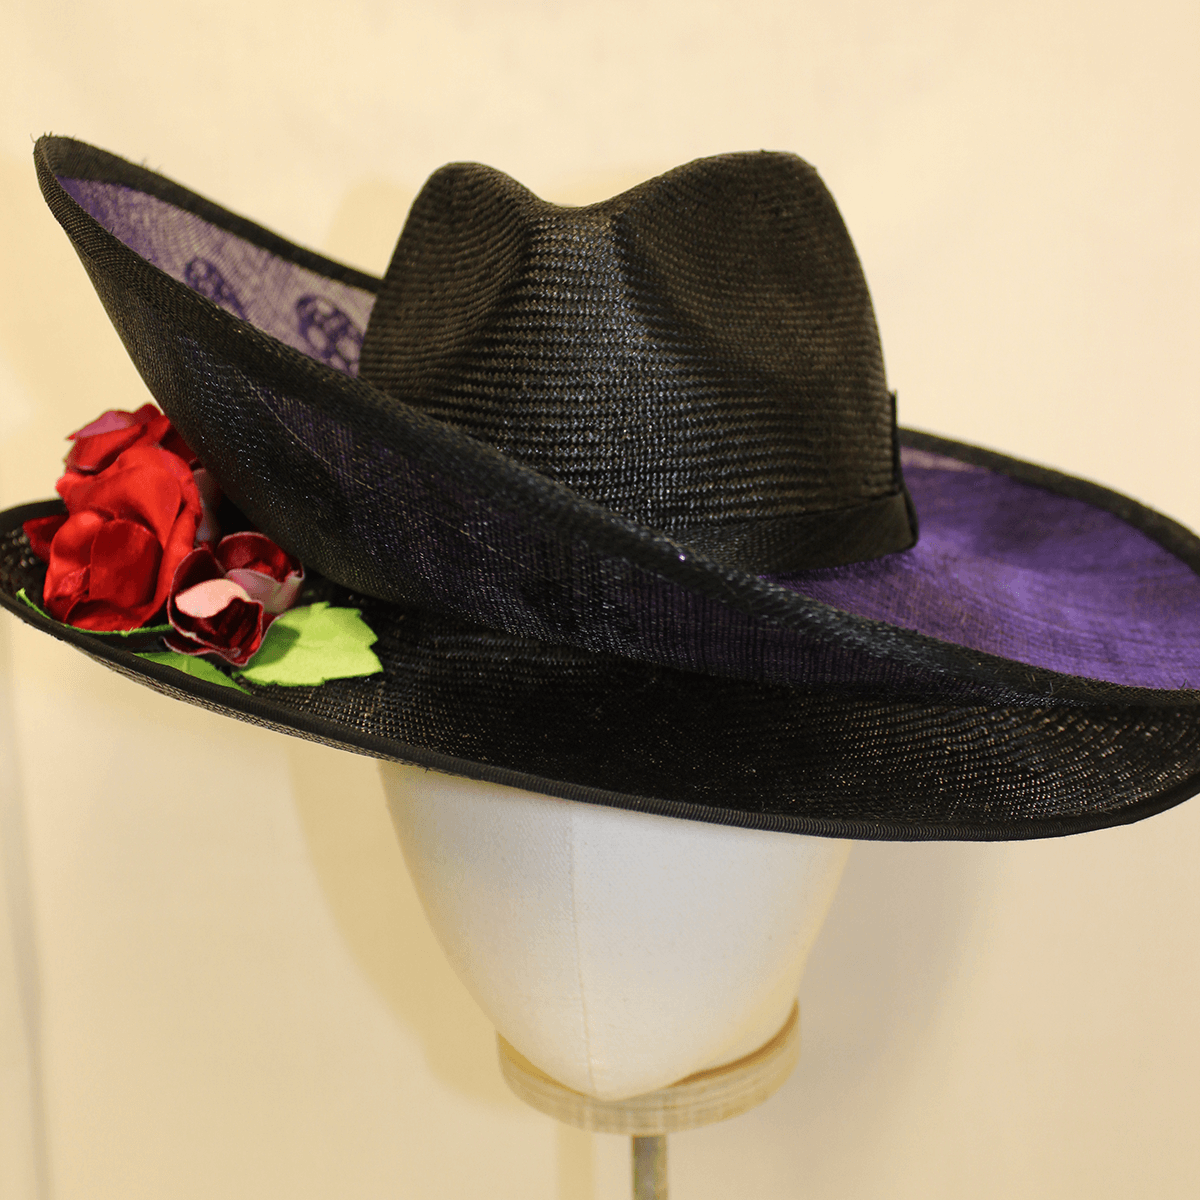 Black and purple wide brimmed hat.